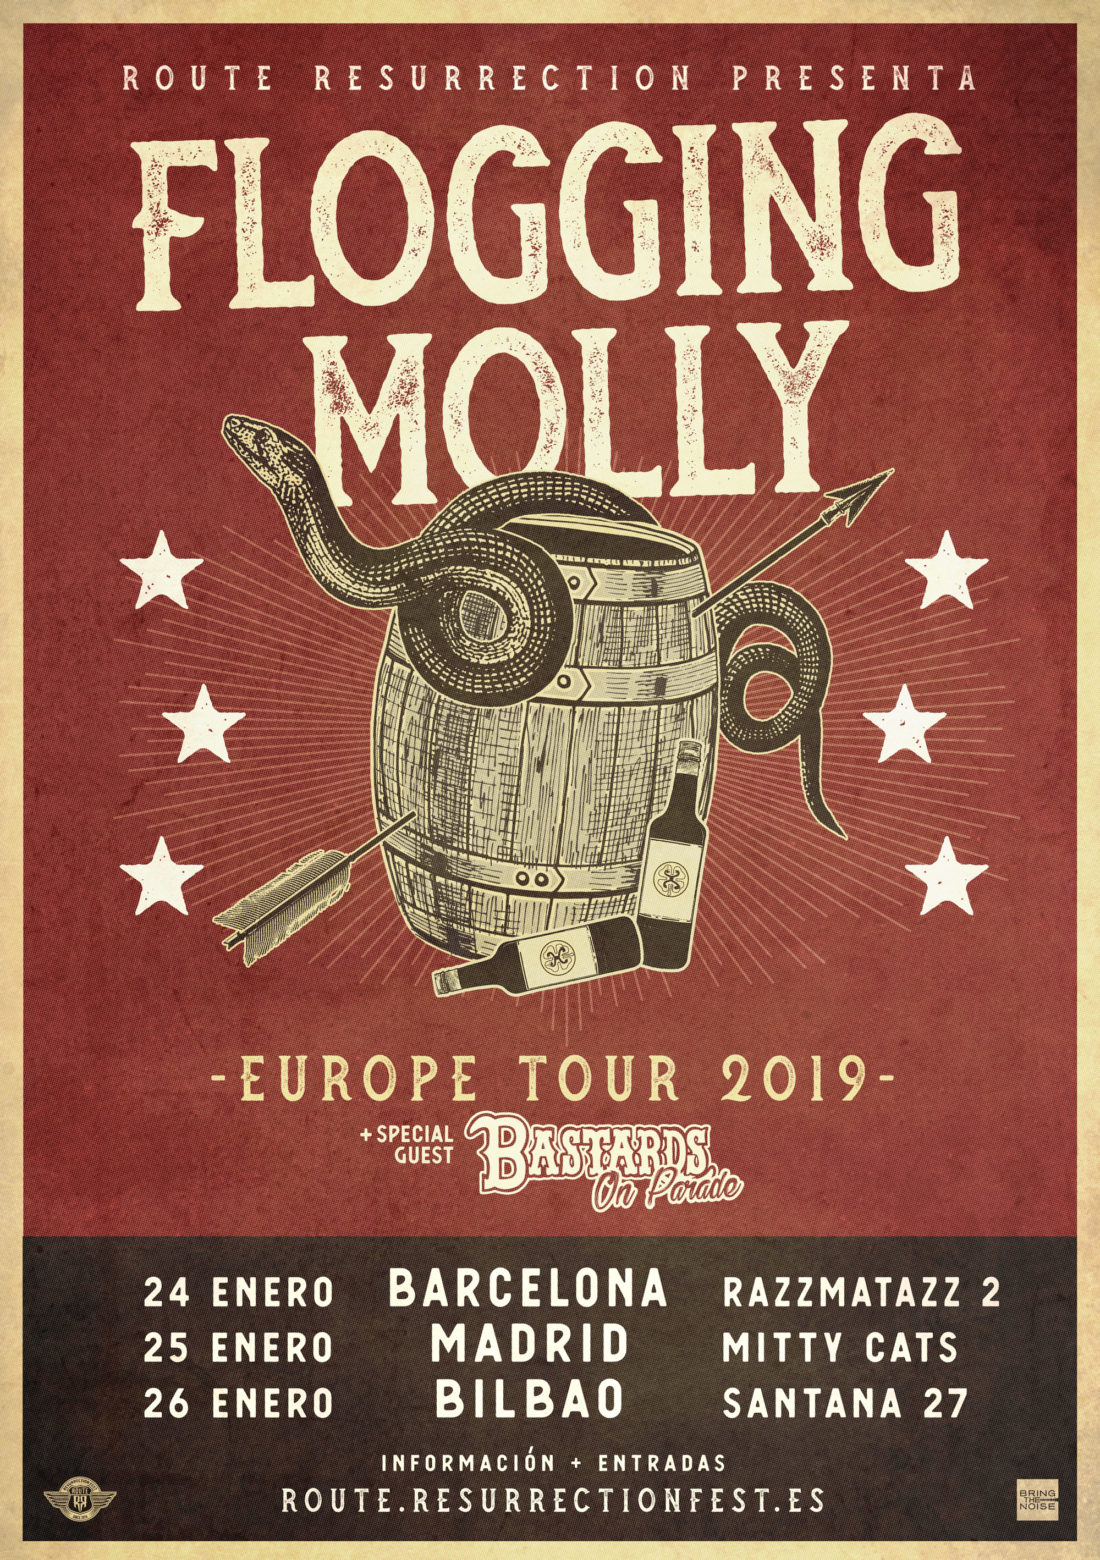 Cambio de sala en Madrid y banda invitada para la gira de Flogging Molly: Bastards On Parade